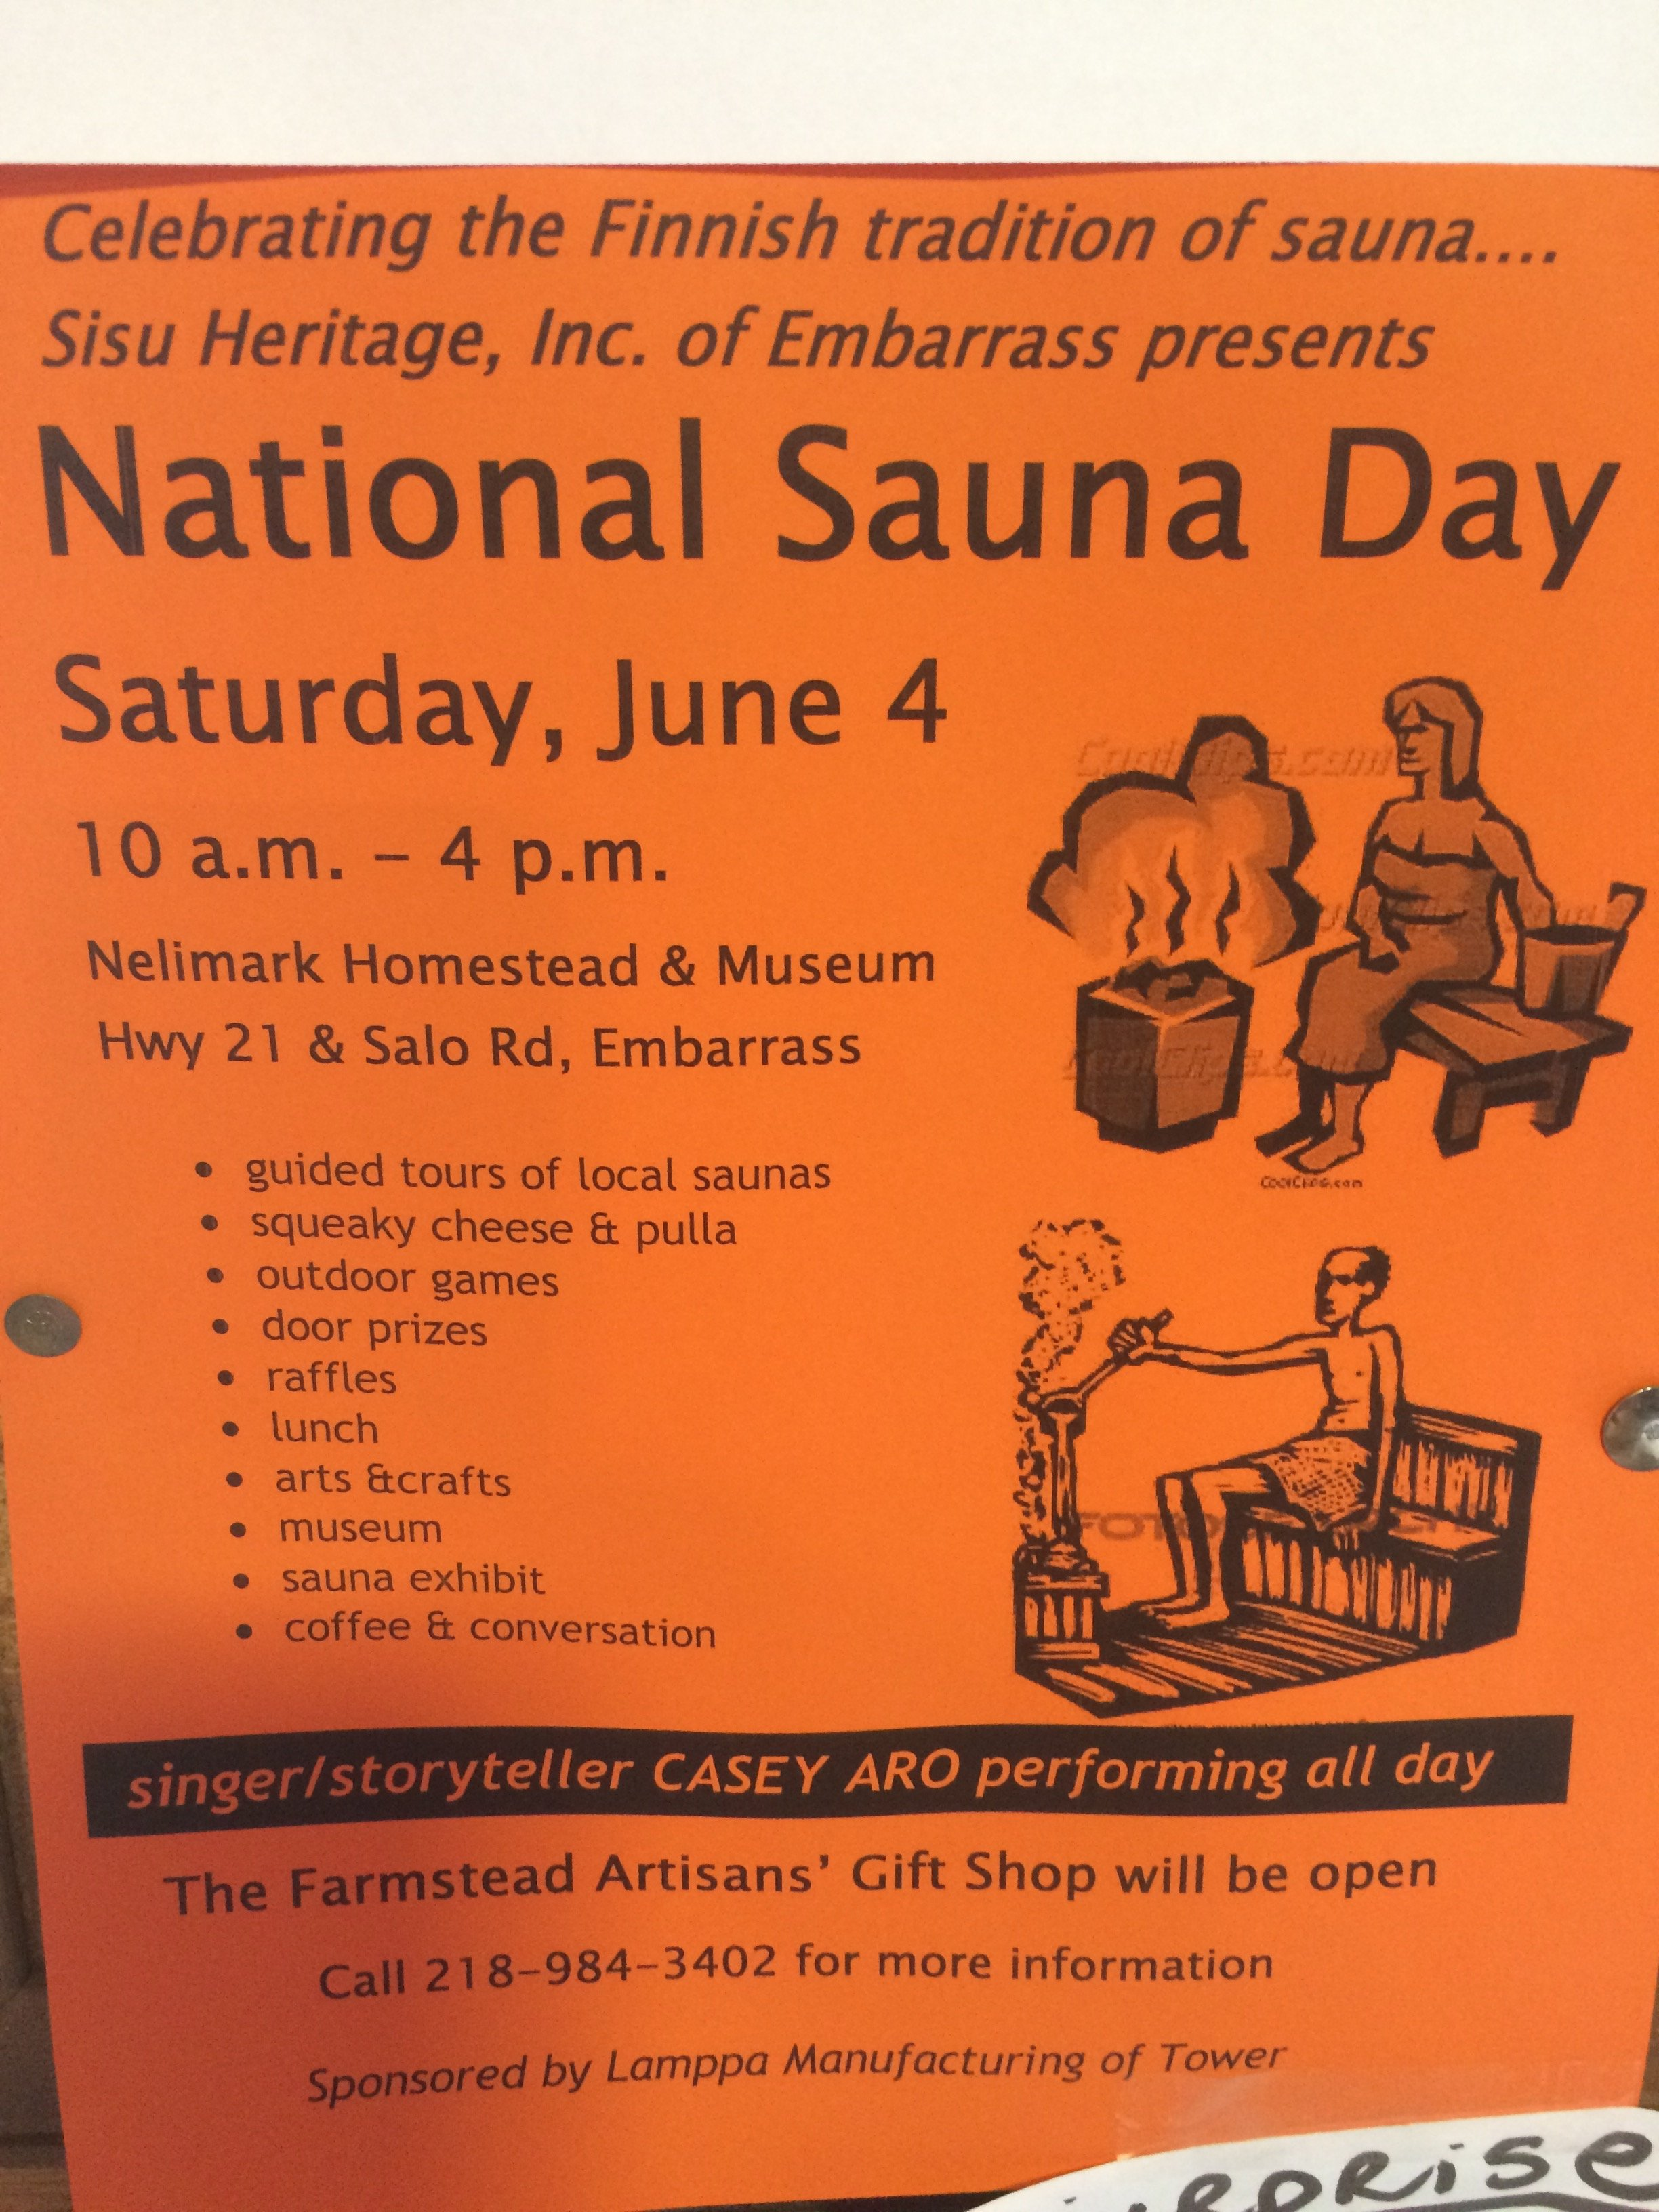 National Sauna Day 2016 flyer, Embarrass, MN